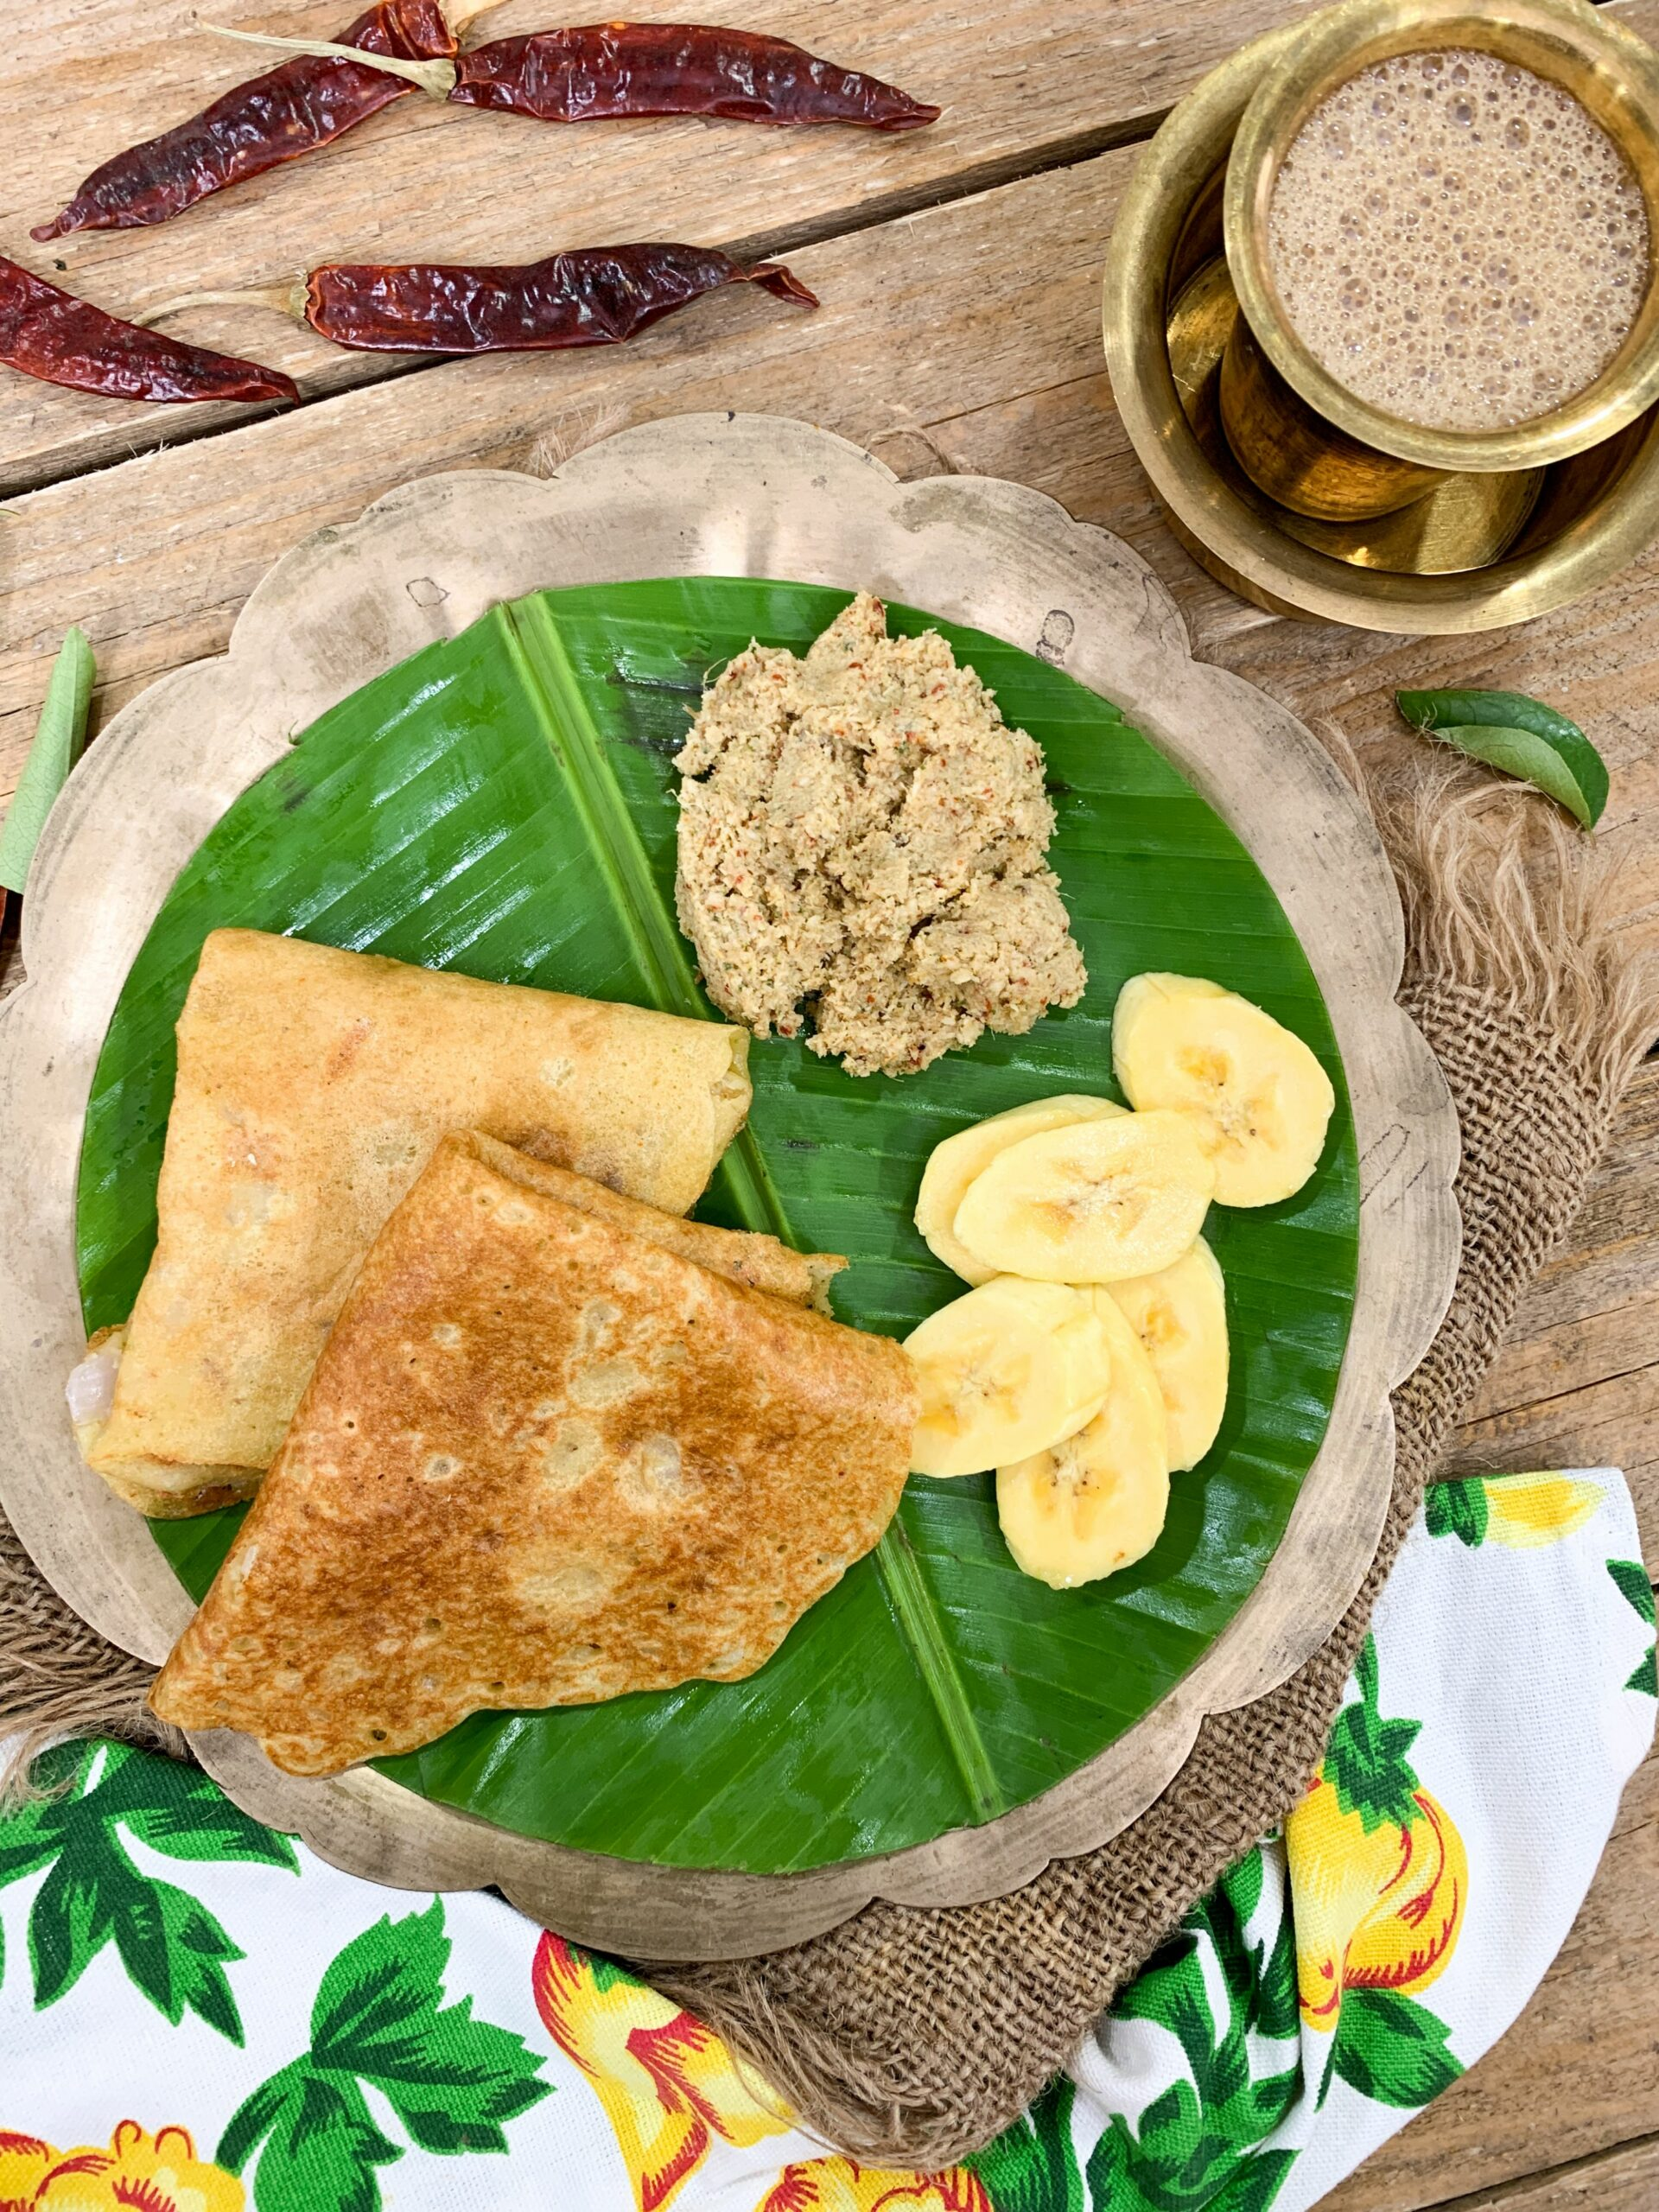 Enjoy A Simple South Indian Breakfast Meal With Adai, Chammanthi ..